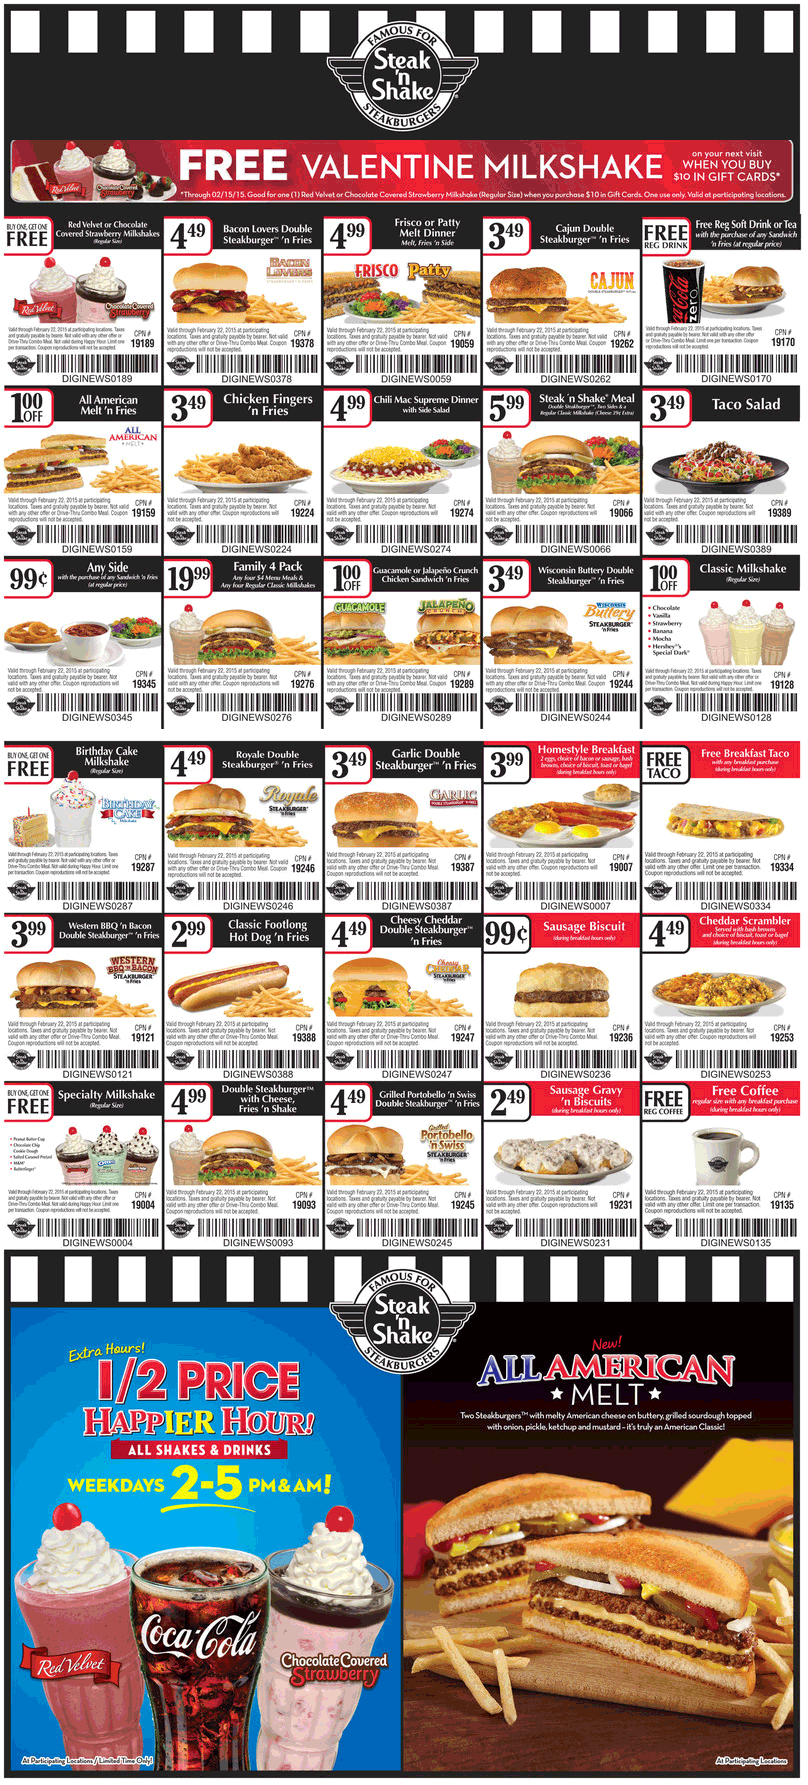 Steak n Shake Coupon August 2017 Second shake free, free coffee & more at Steak n Shake restaurants